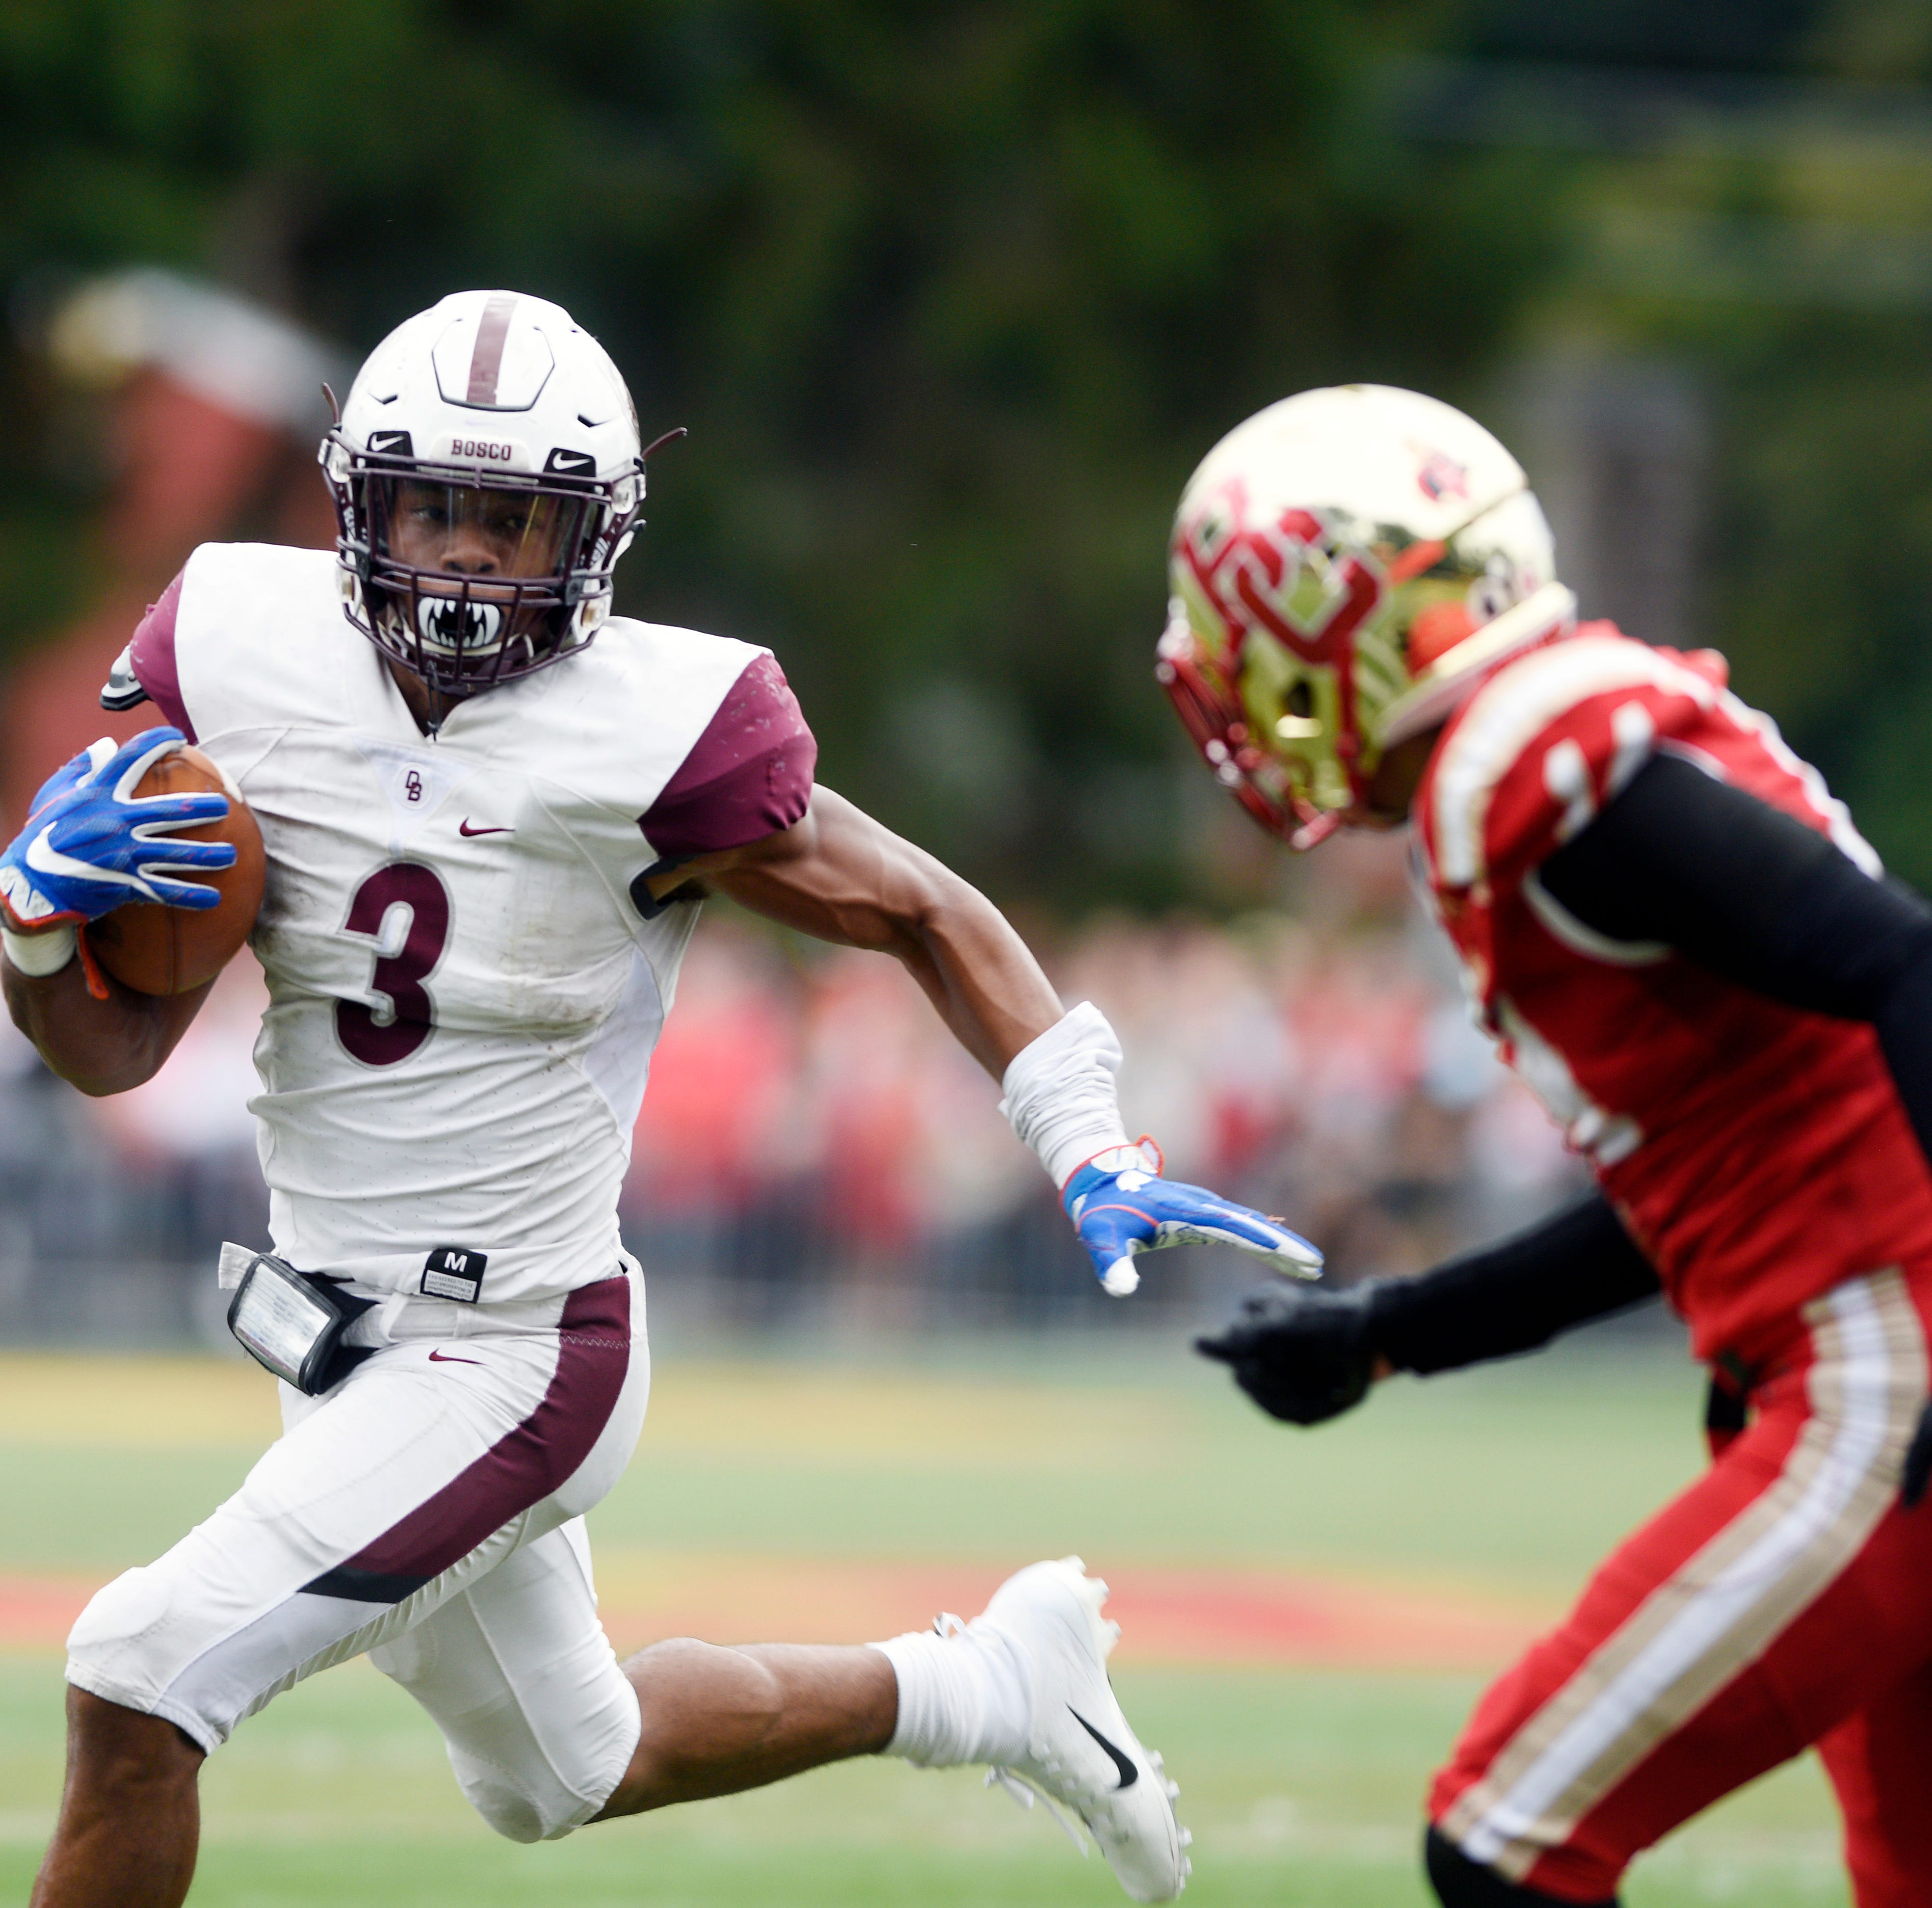 NJ football recruiting tracker: How the top recruits fared in Week 3